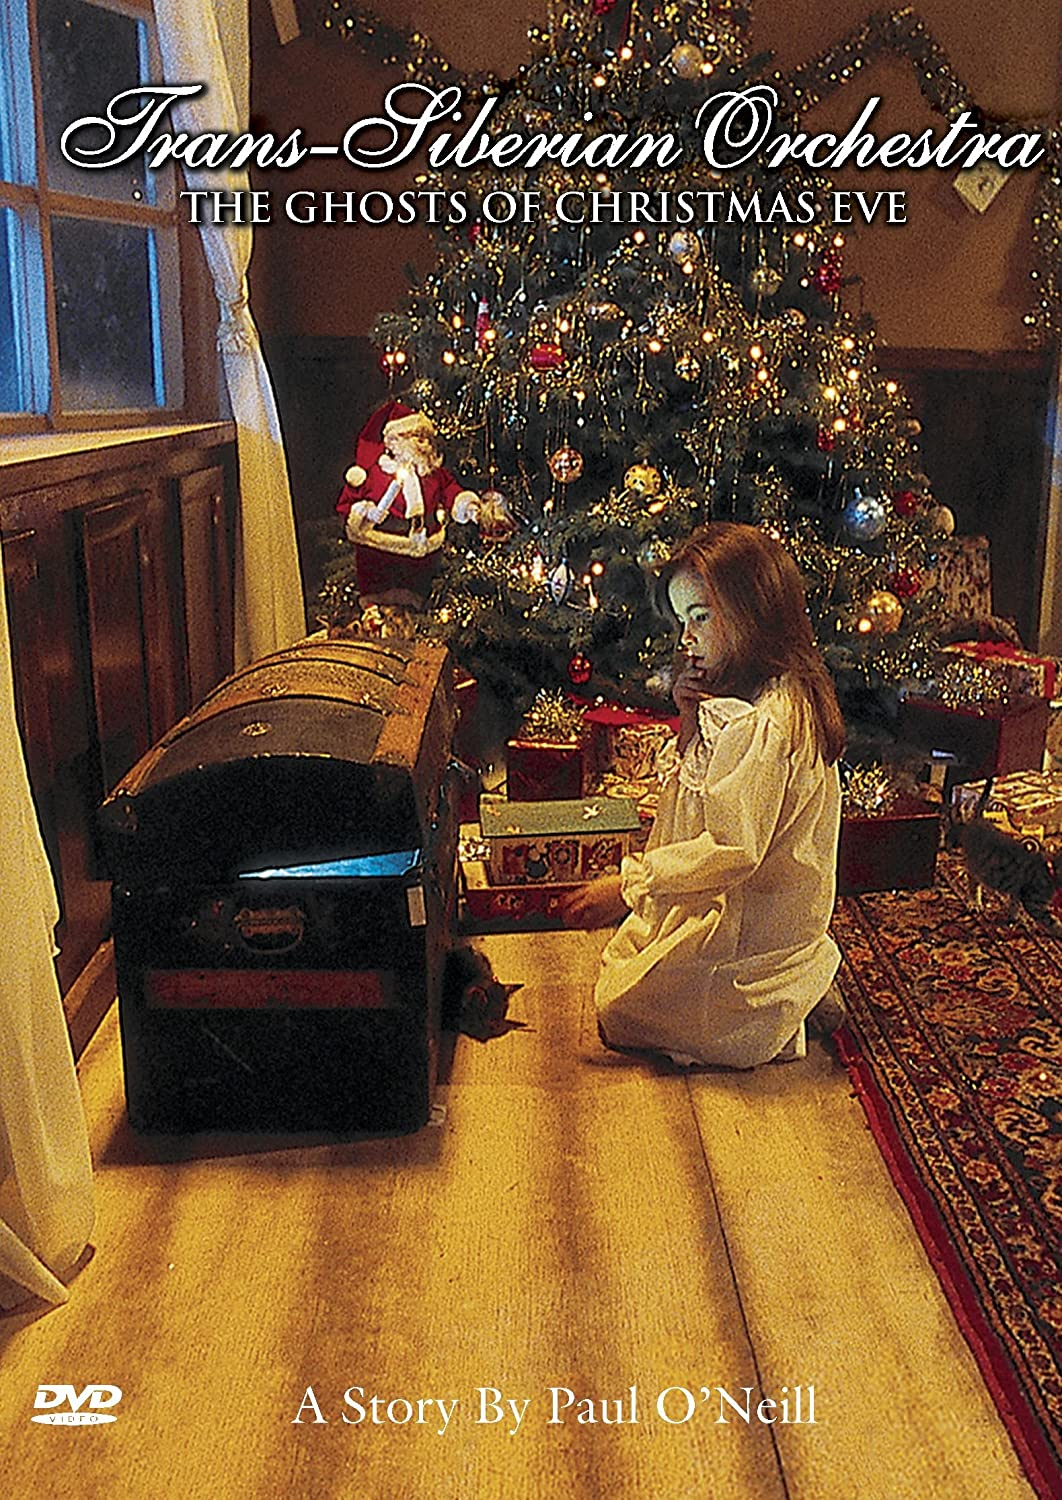 Amazon.com: Trans-Siberian Orchestra - The Ghosts Of Christmas Eve ...